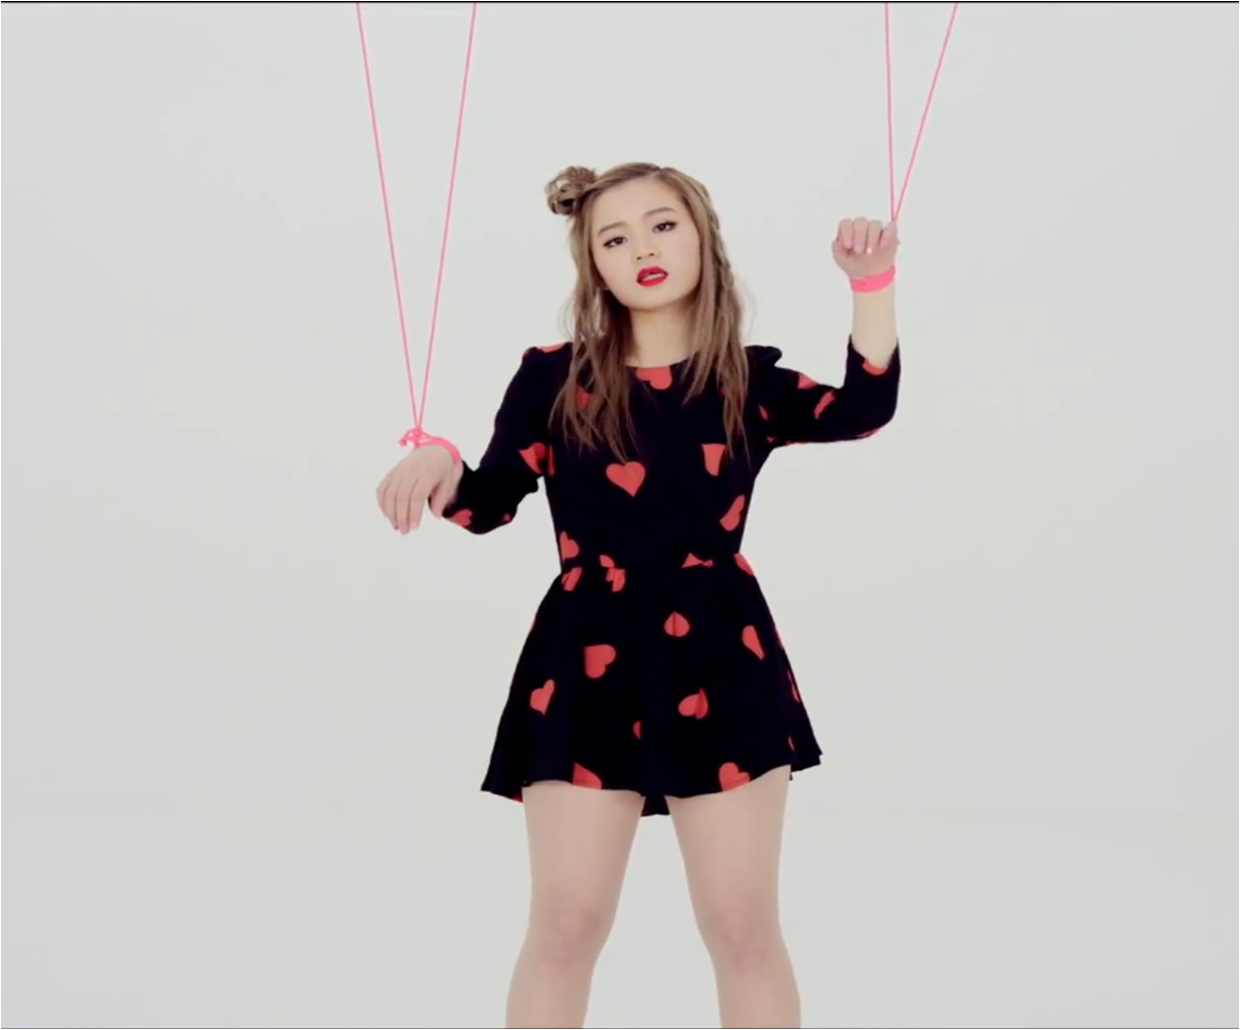 Lee Hi Images Lee Hi The Puppet Hd Wallpaper And Background Photos